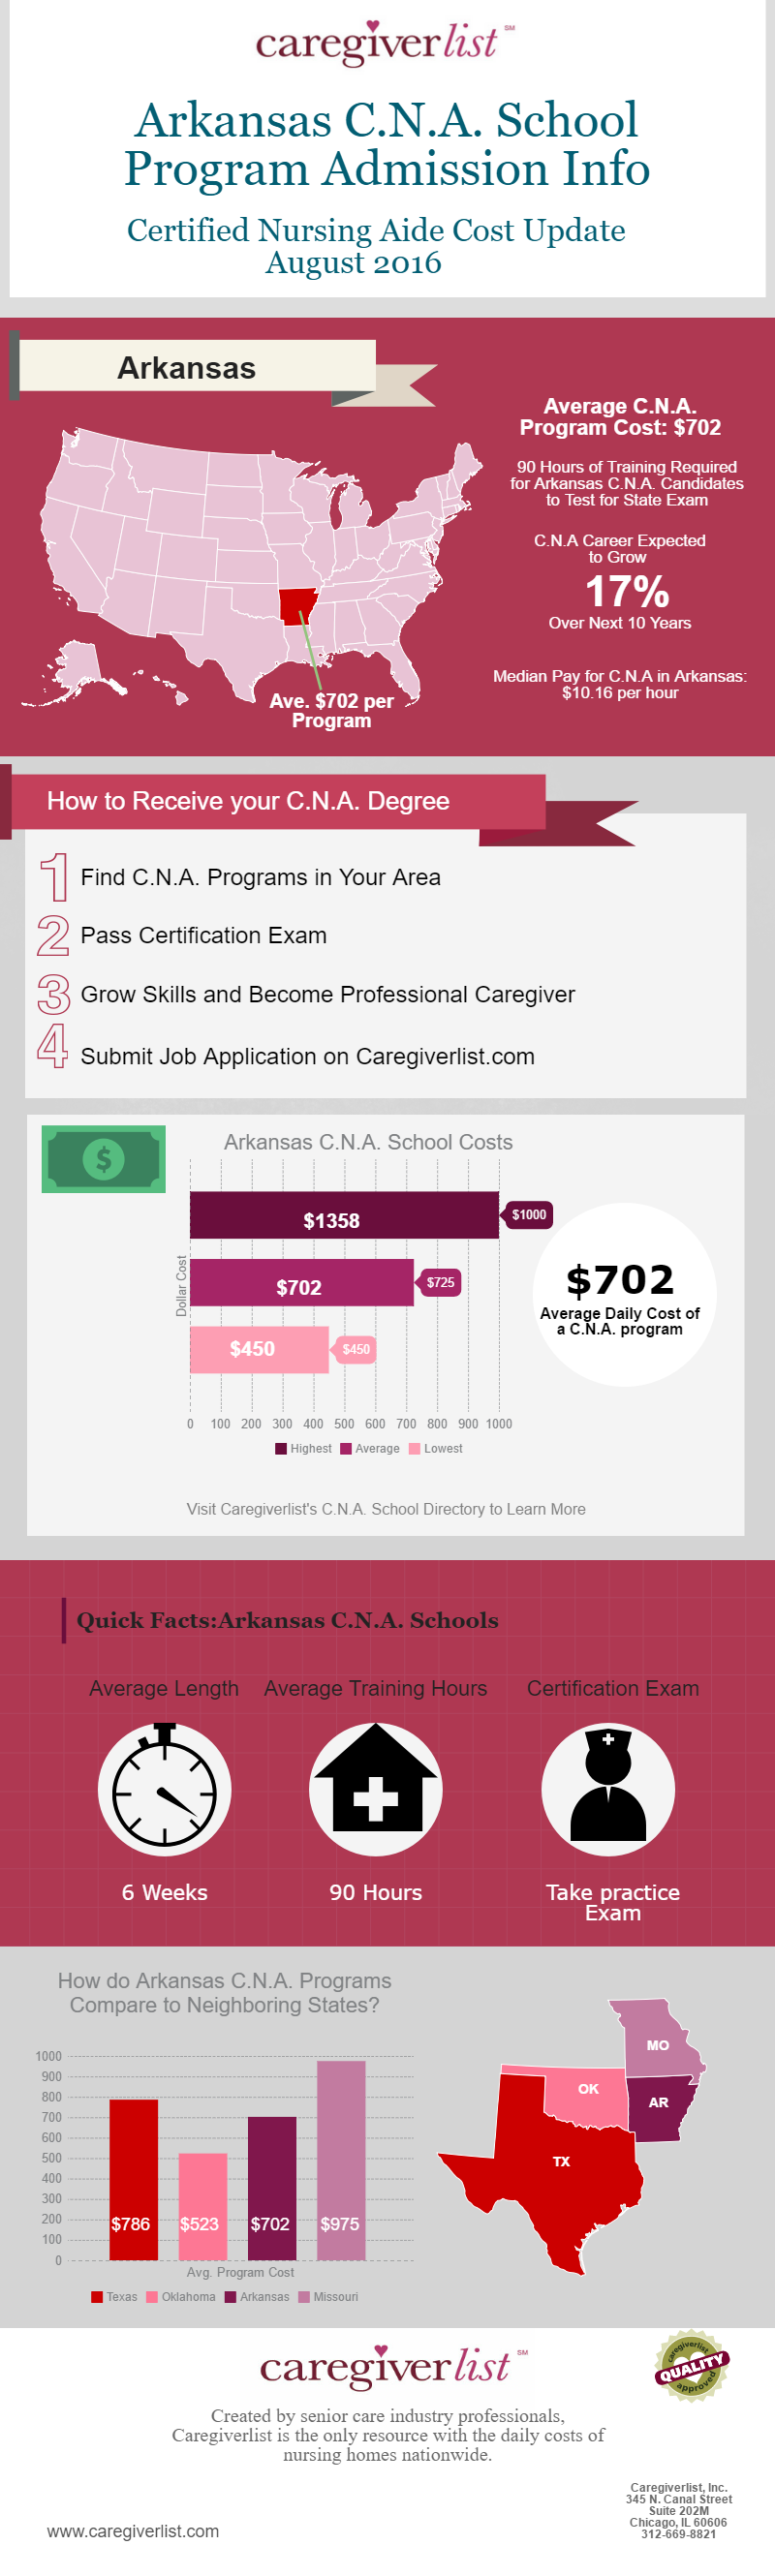 Please visit Caregiverlist.com for more information   #Arkansas #CNAschool #CNASchoolInformation #CNAASchoolCost